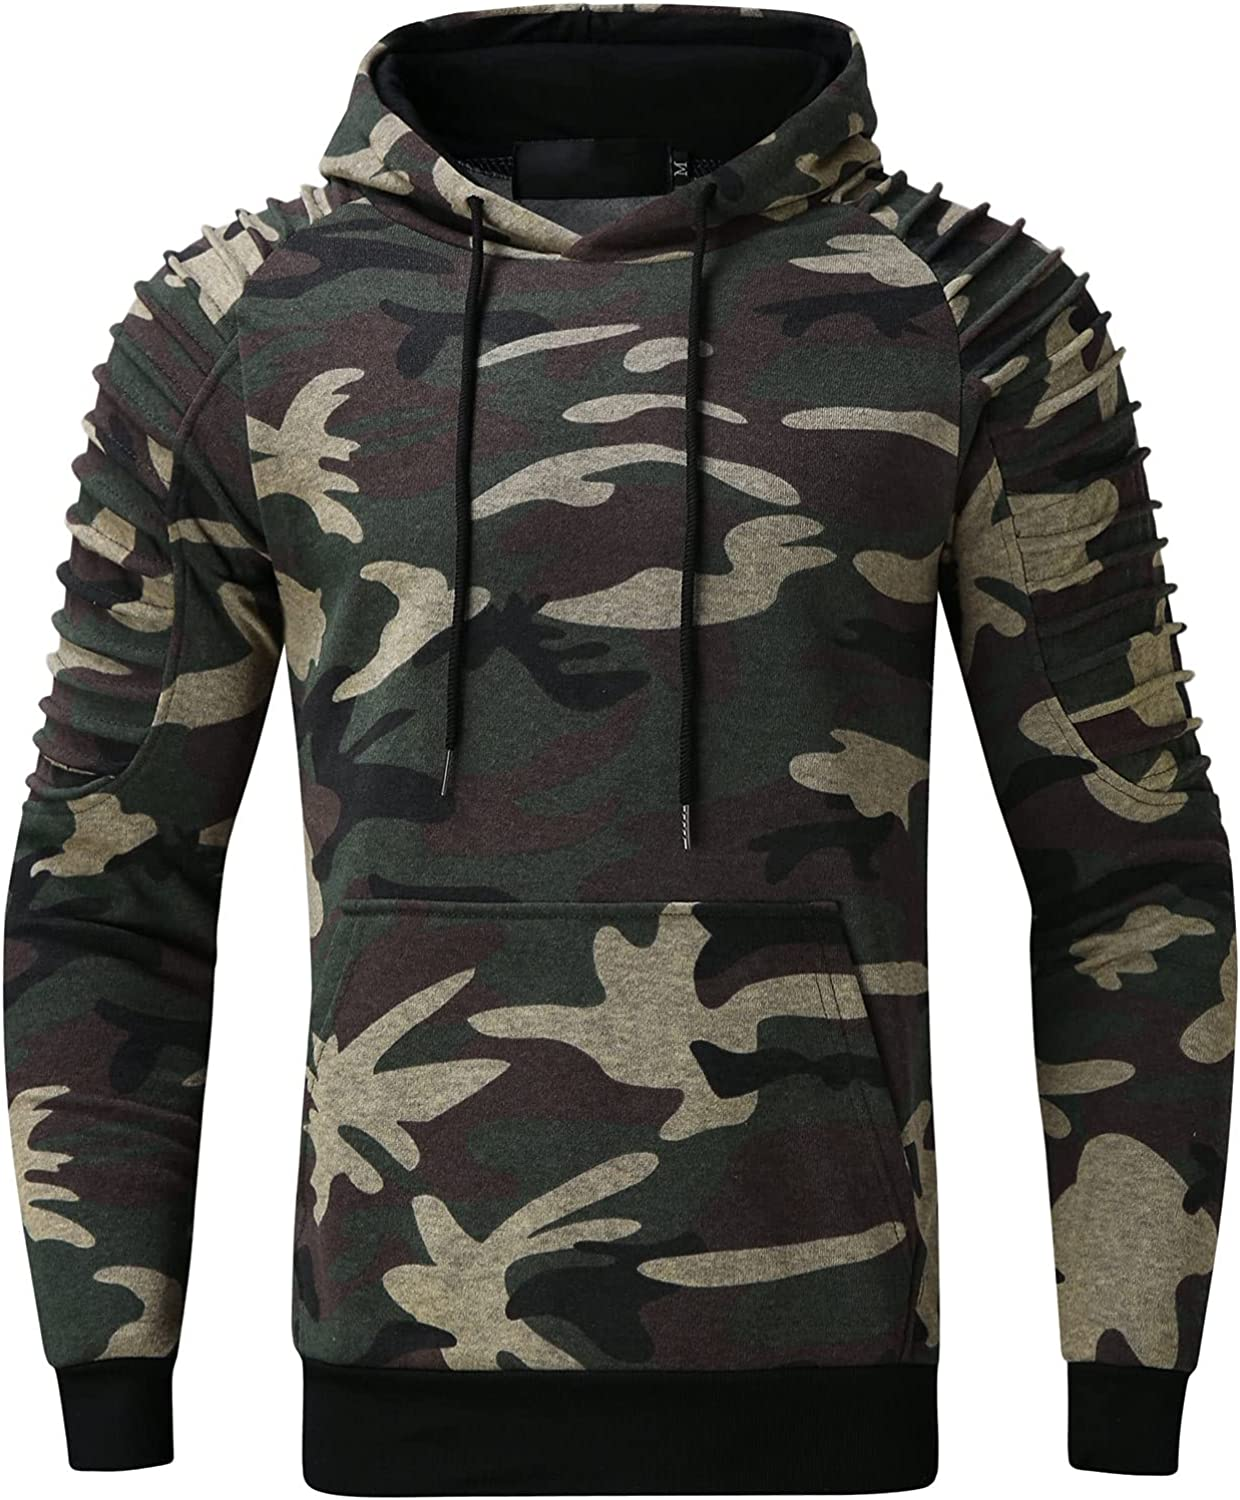 XXBR Camo Hooded Sweatshirts for Mens, Pleated Shoulder Camouflage Drawstring Pullover Workout Sports Fitness Hoodies